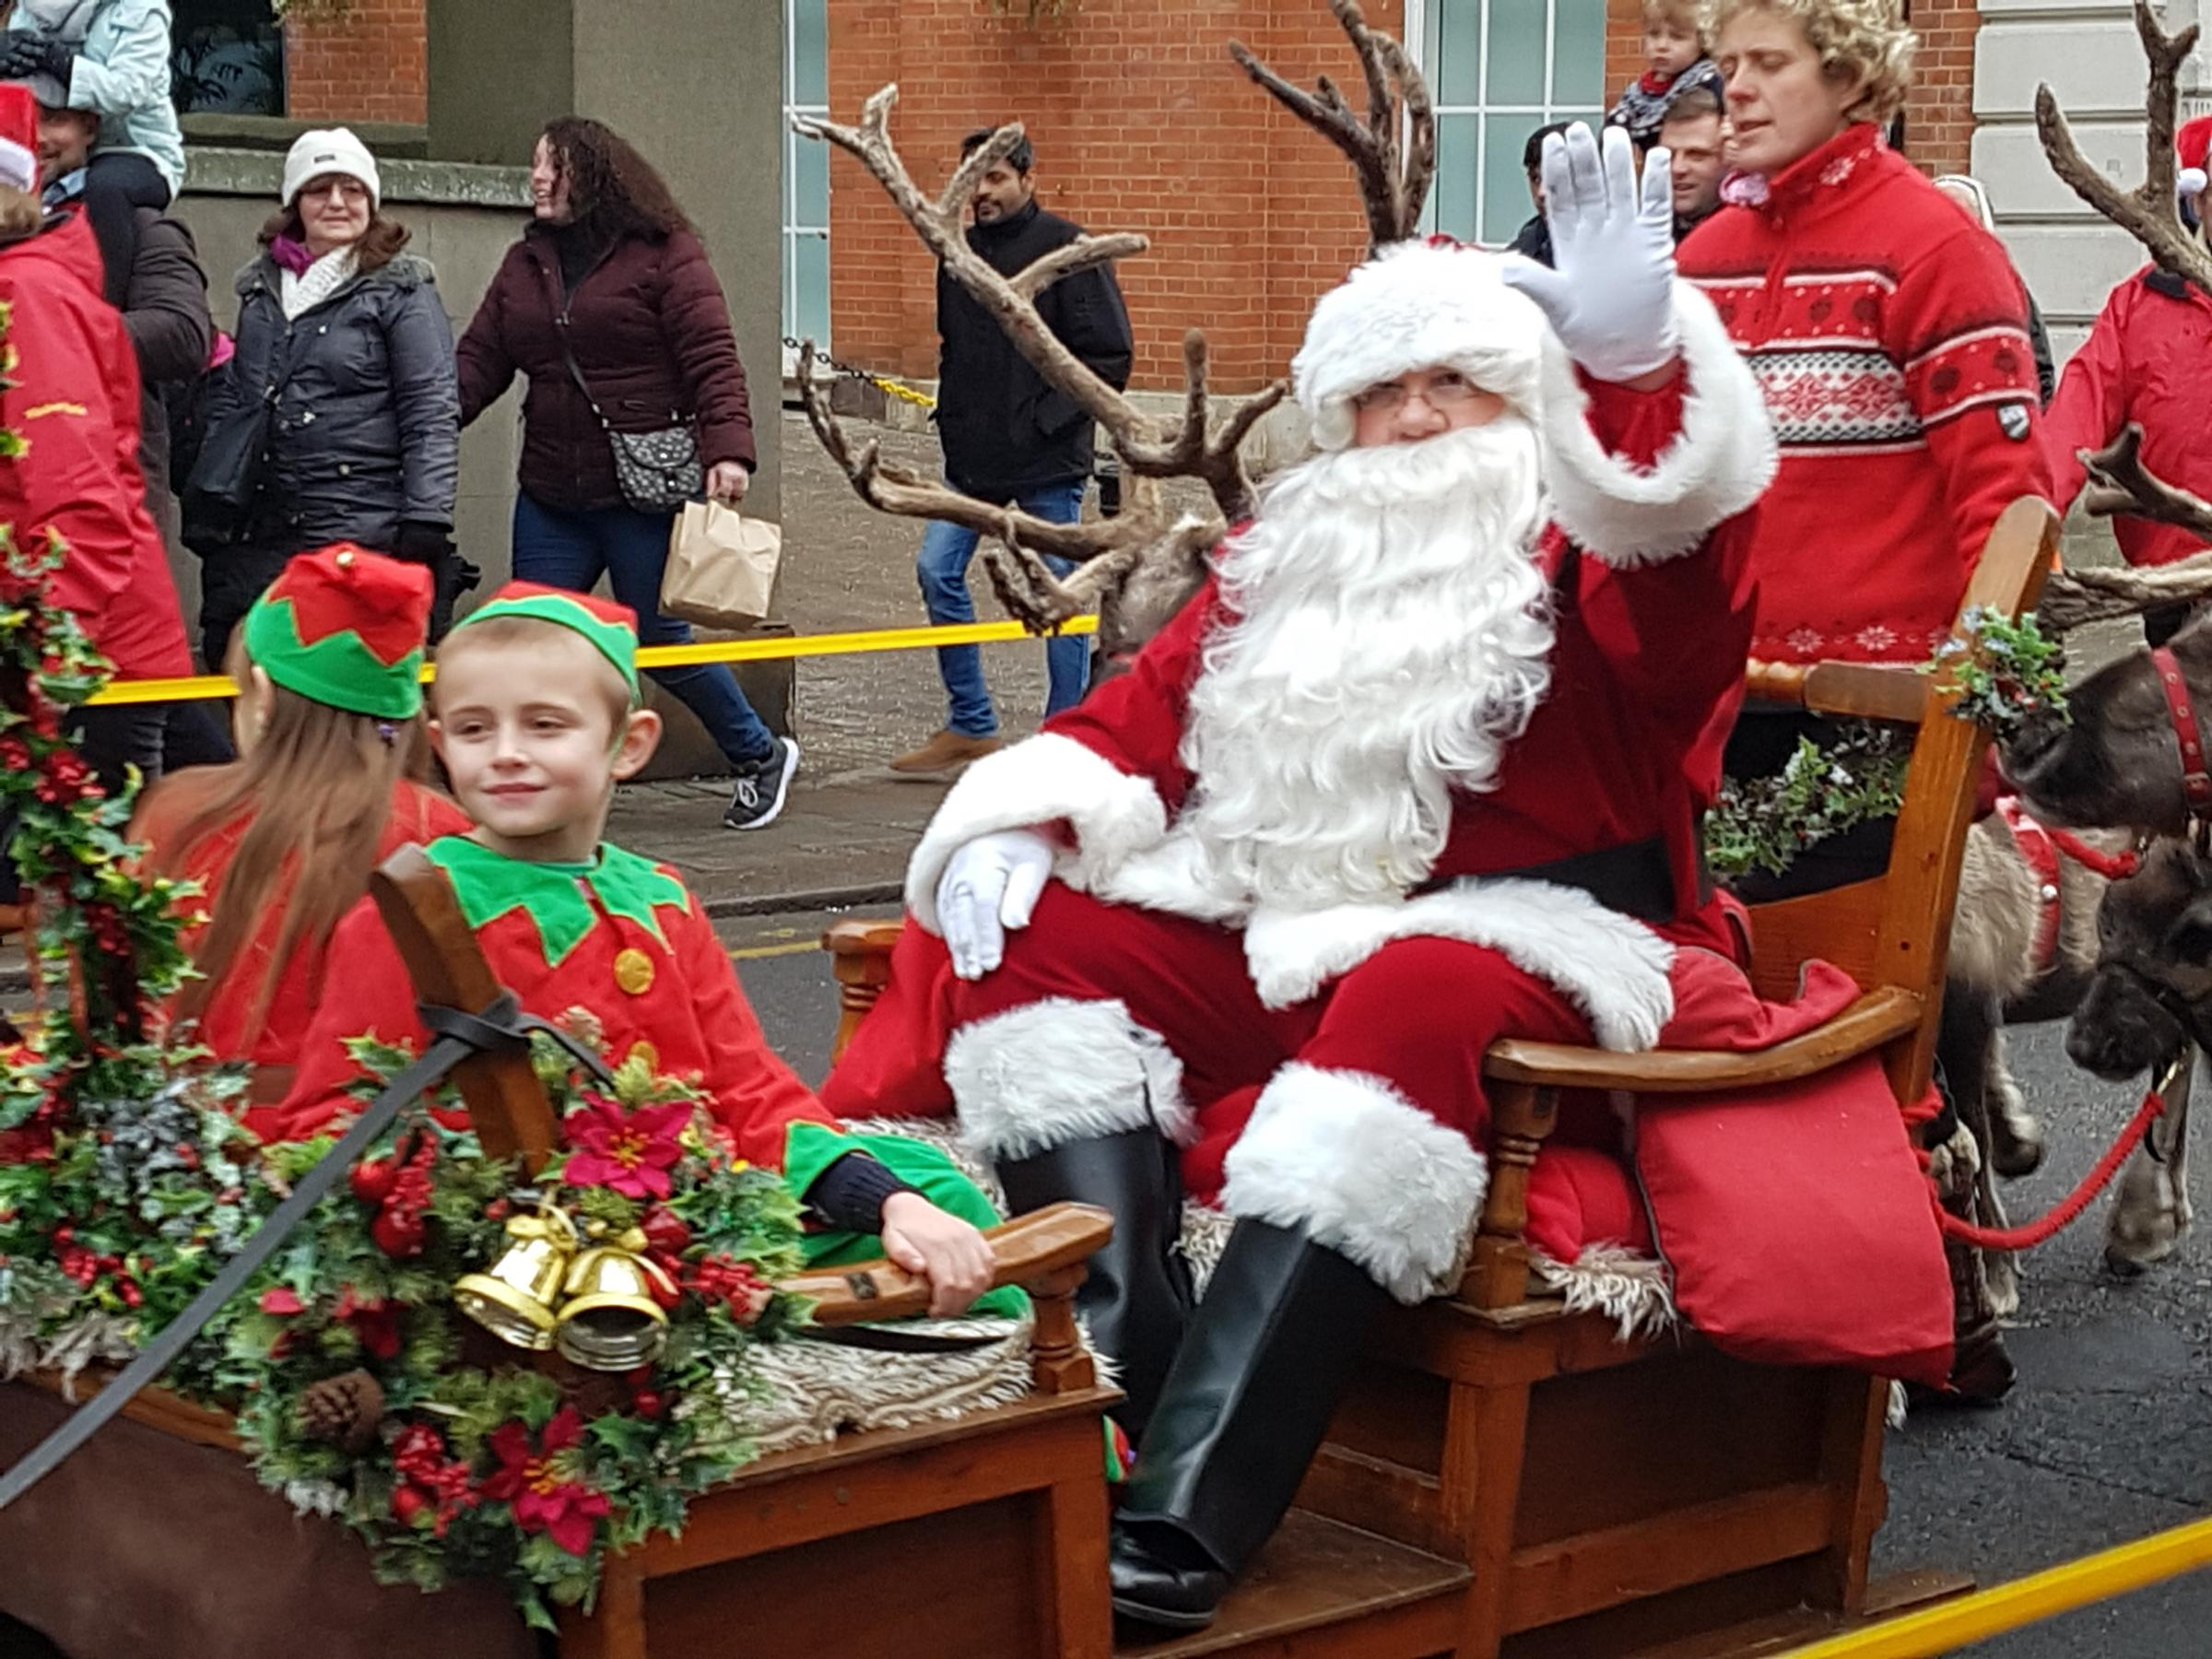 Crowds gather as Santa comes to Windsor town centre with his reindeer parade